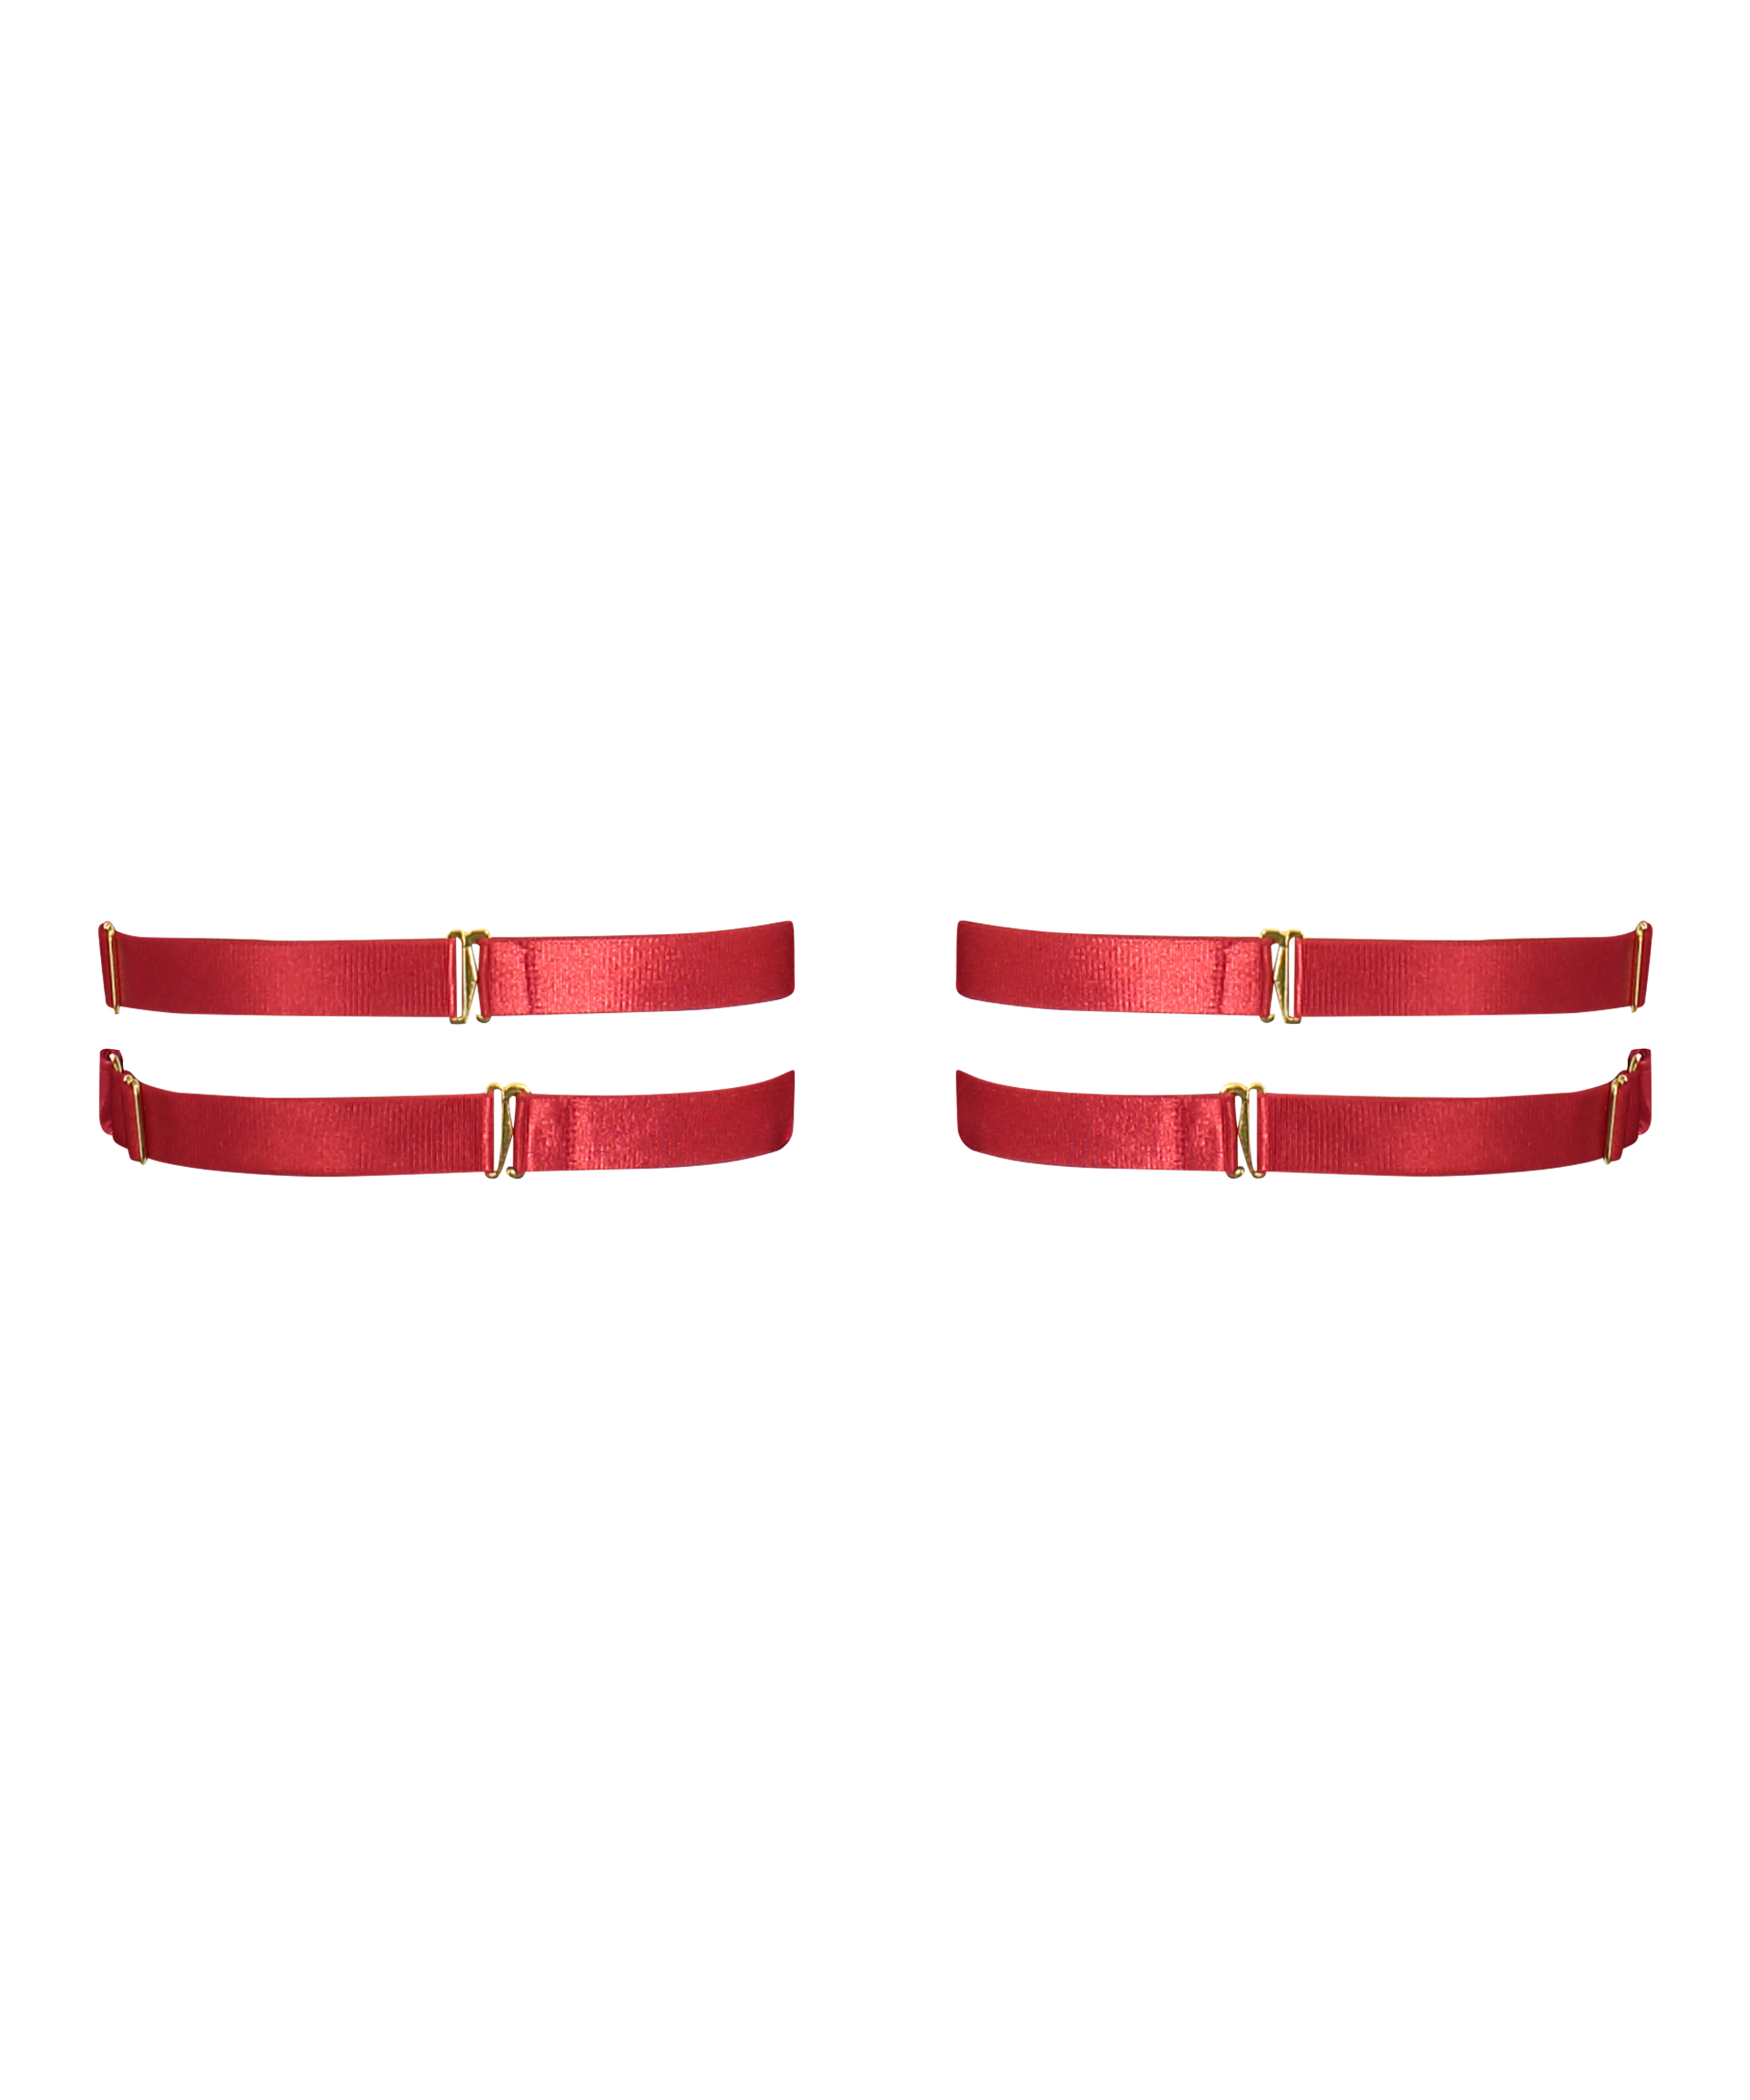 Heart Private Hold Up Suspenders, Red, main